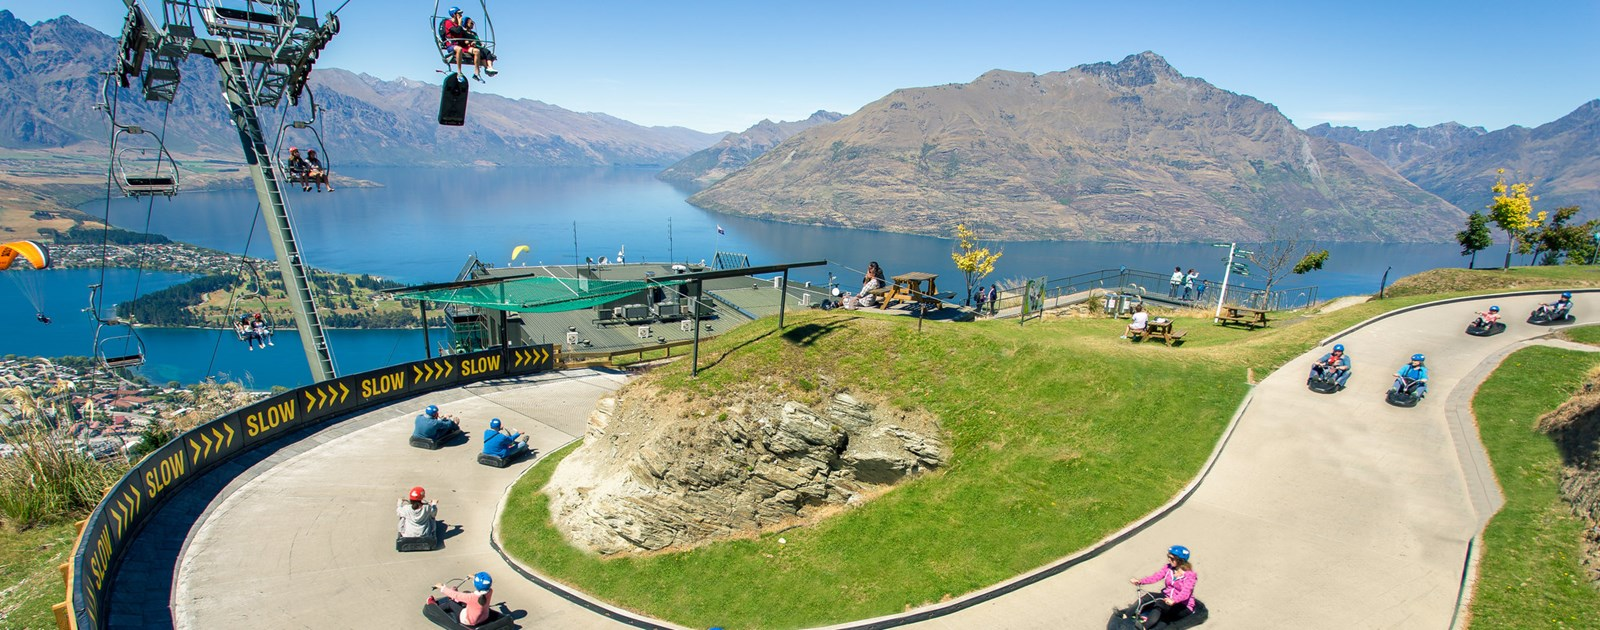 skyline-queenstown-luge